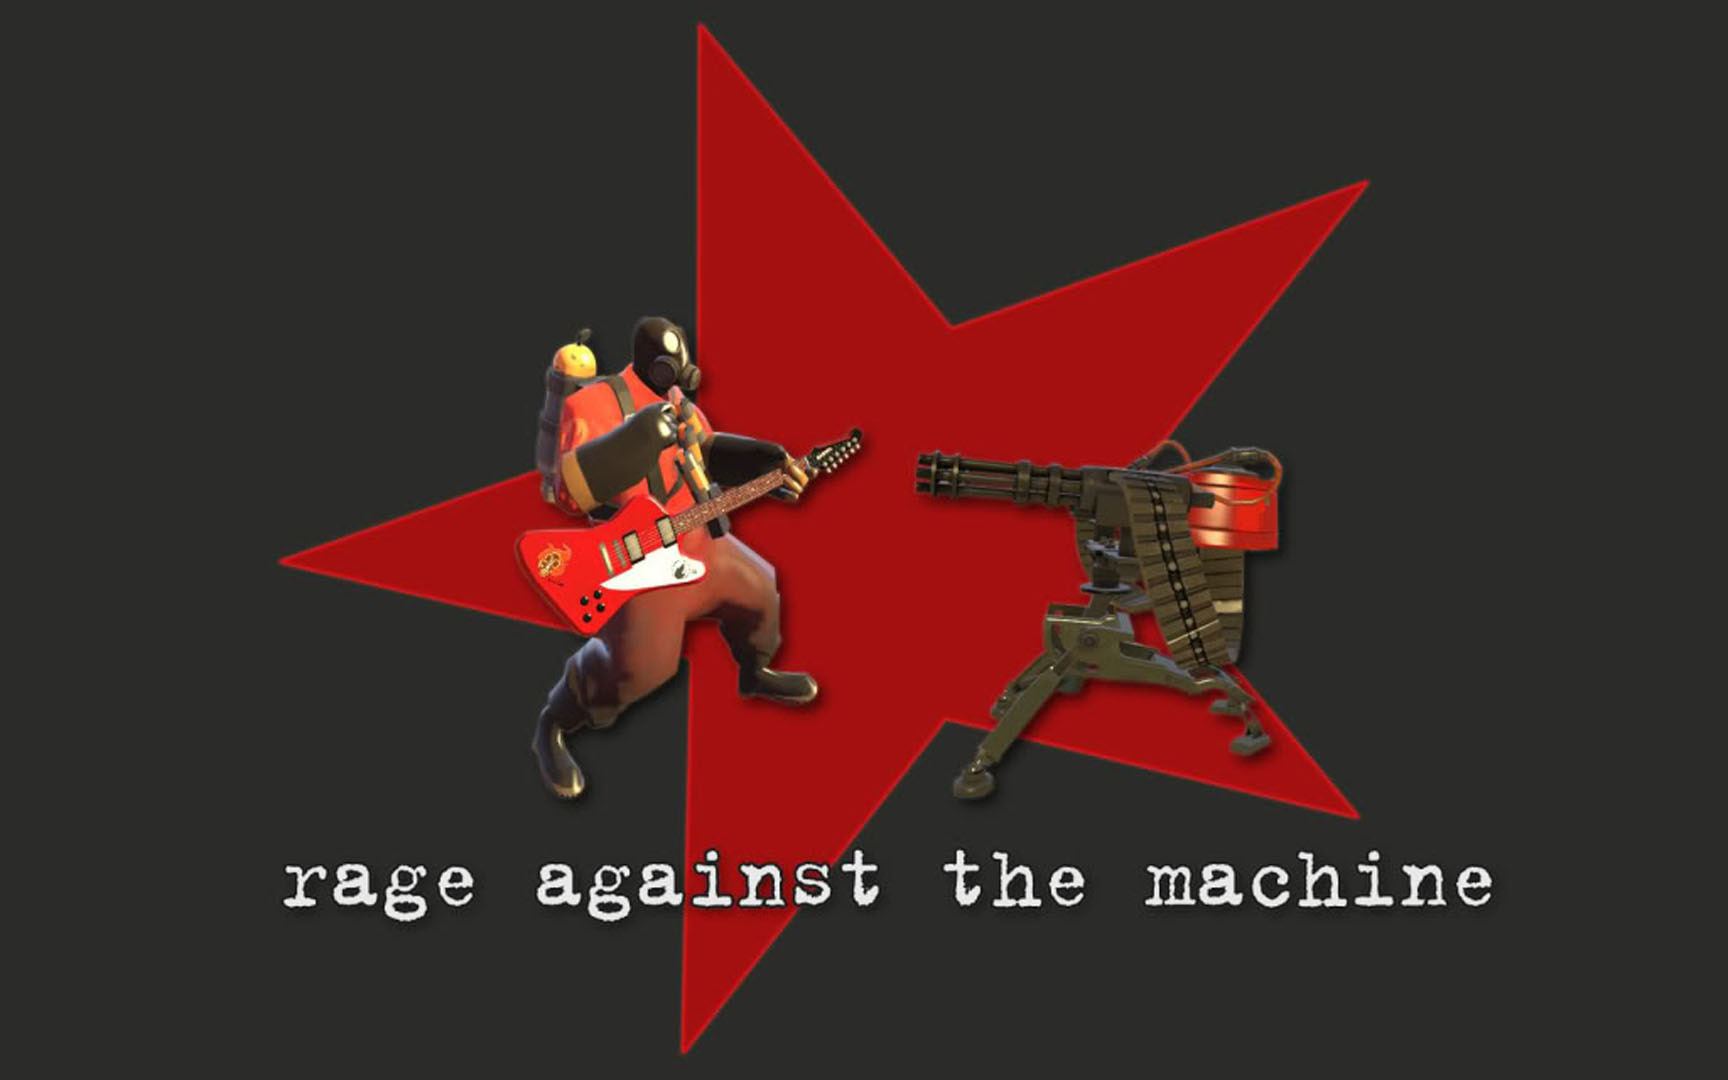 Rage Against The Machine Team Fortress 2 Wallpaper